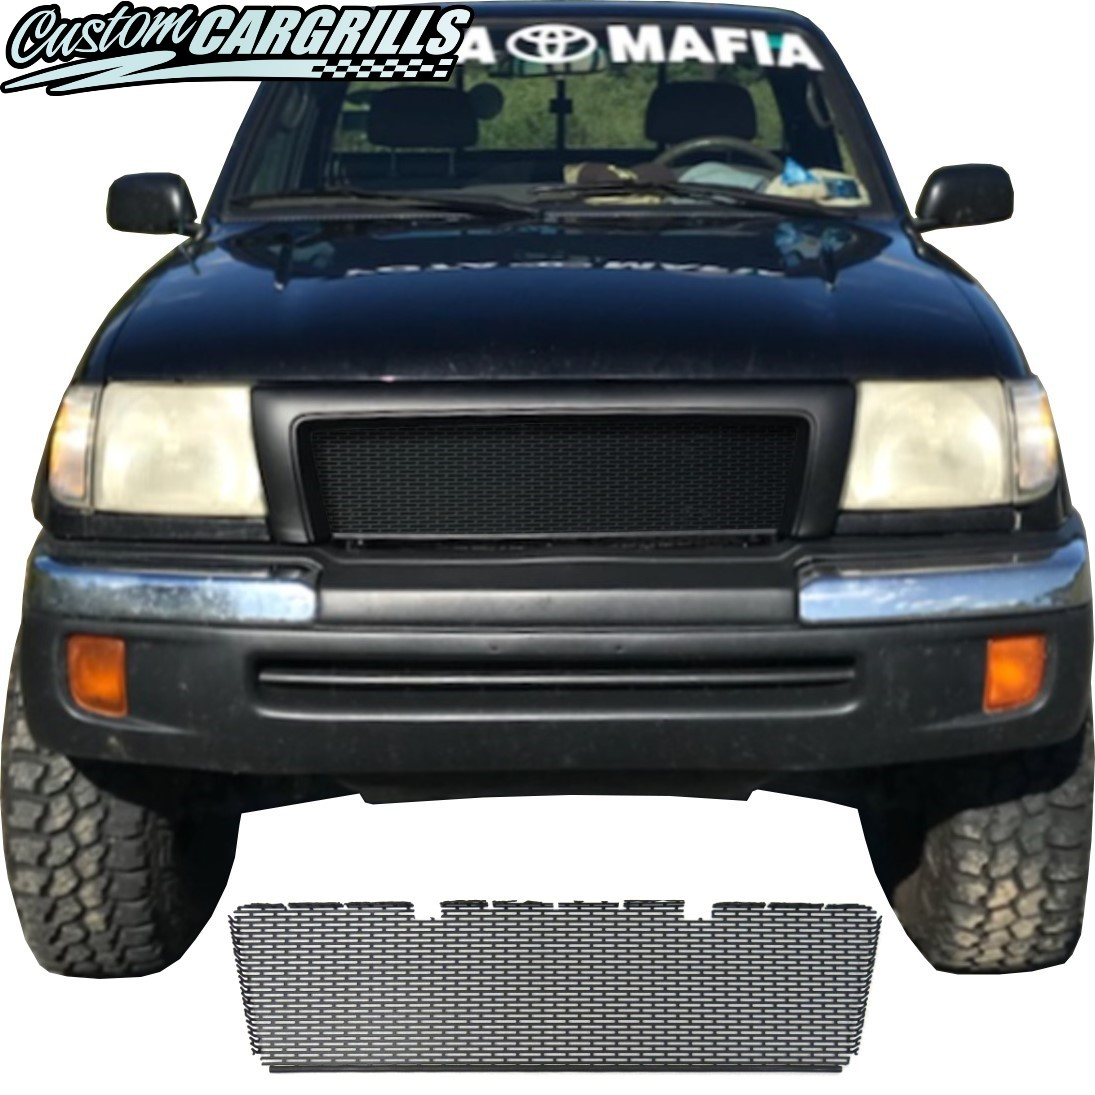 1998-2000 Toyota Tacoma Grill Mesh